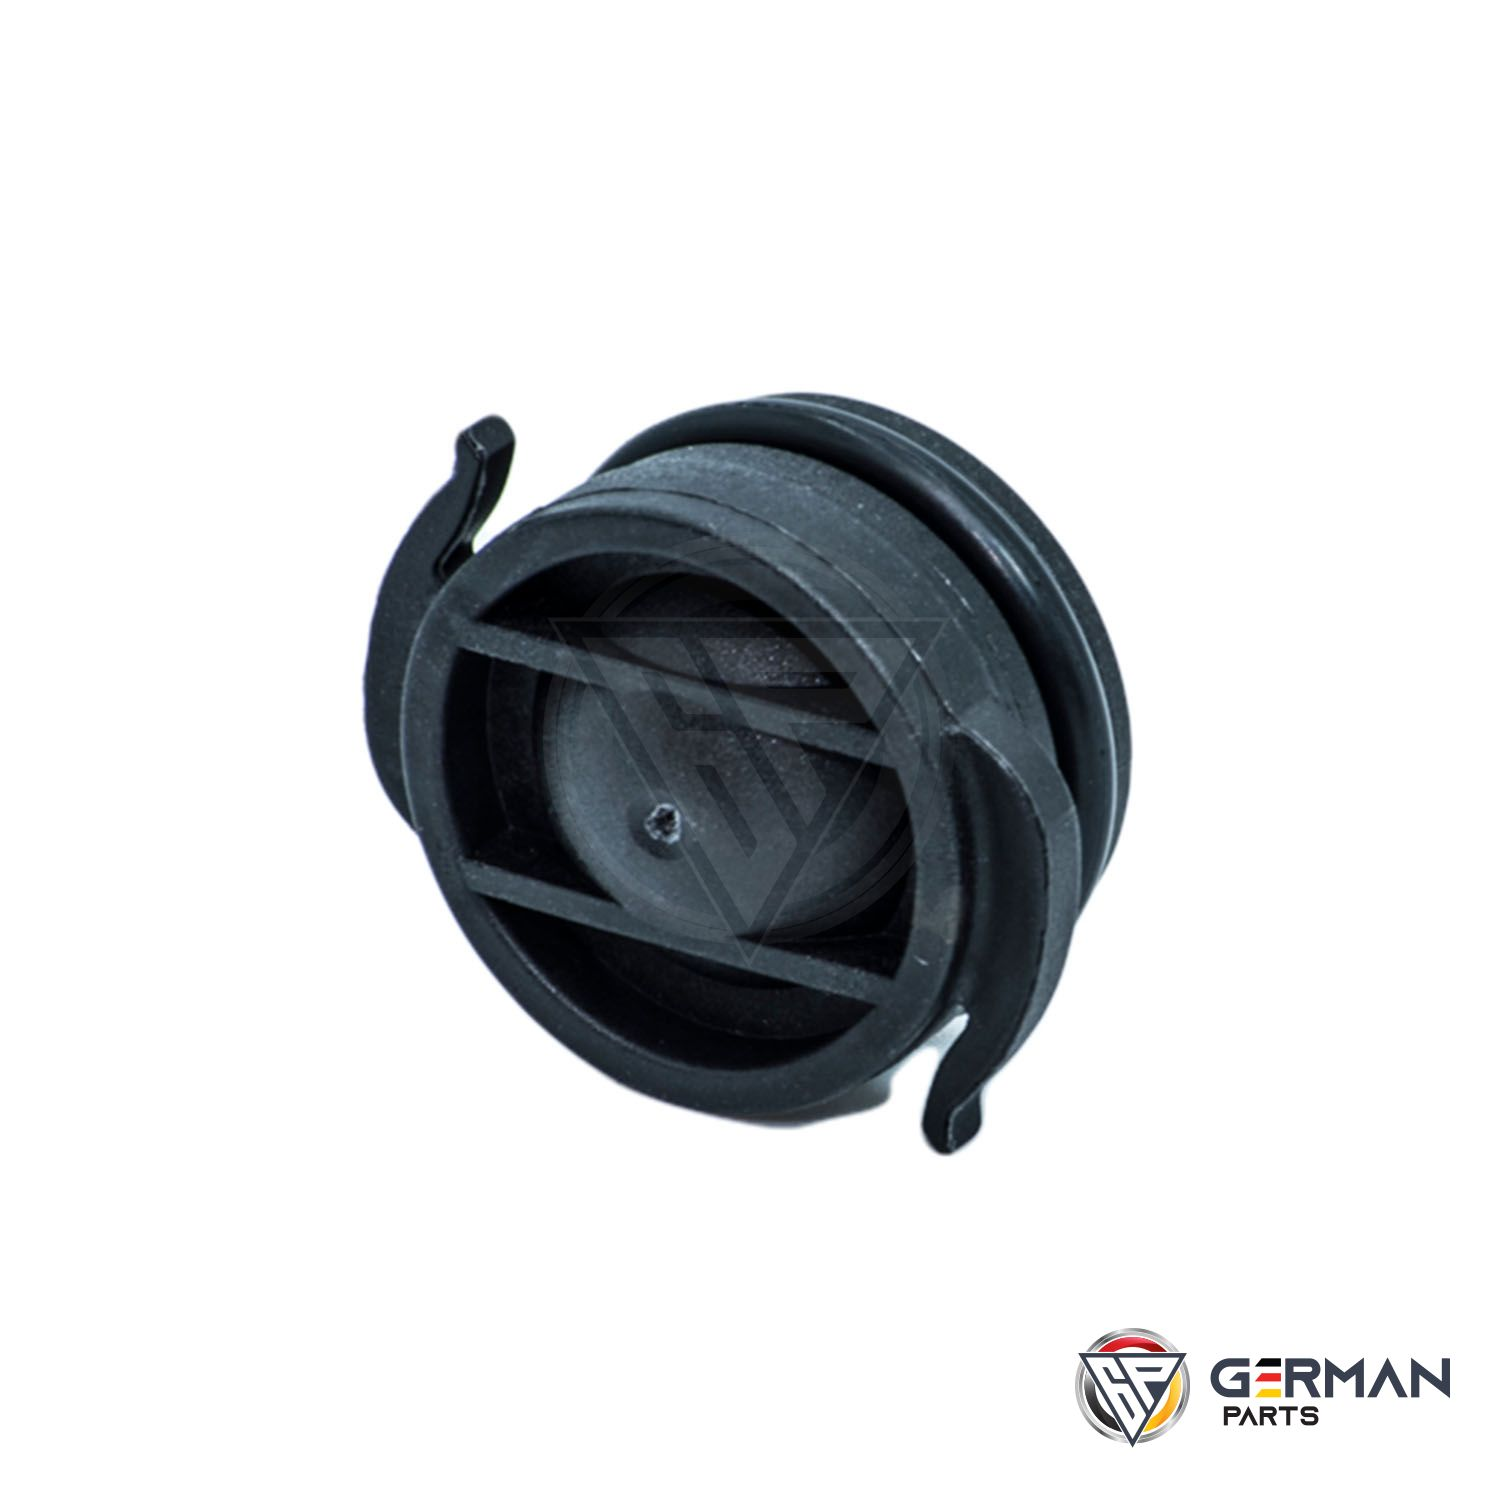 Buy Genuine Mercedes Benz Oil Filter Cover 2781800438 - German Parts